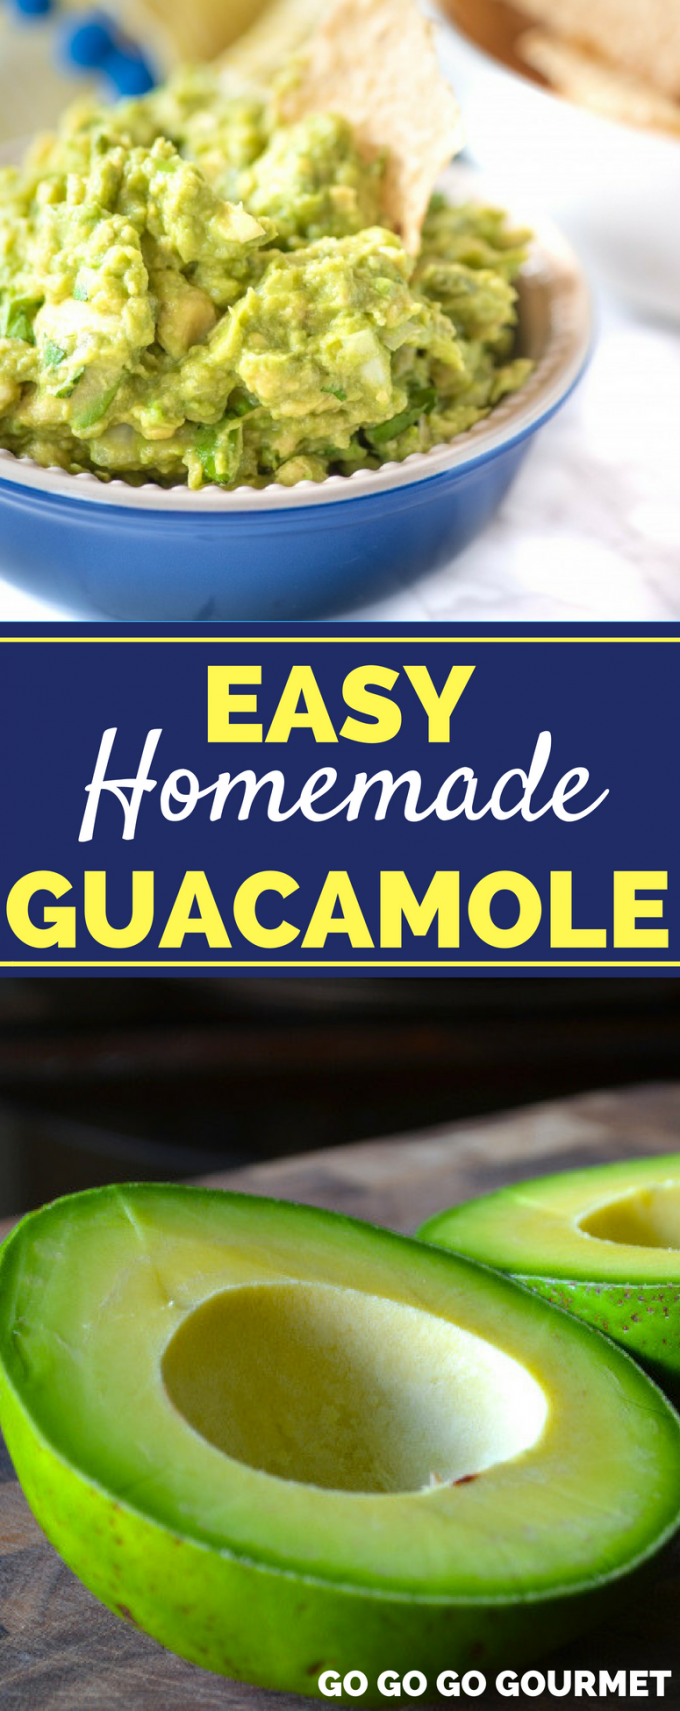 You are going to love how easy this Homemade Guacamole recipe is! Mexican style meals aren't complete without a bowl of chips and this dip. It's the perfect Chipotle copycat! #easyhomemadeguacamole #chipotleguacamole #authenticguacamole #gogogogourmet